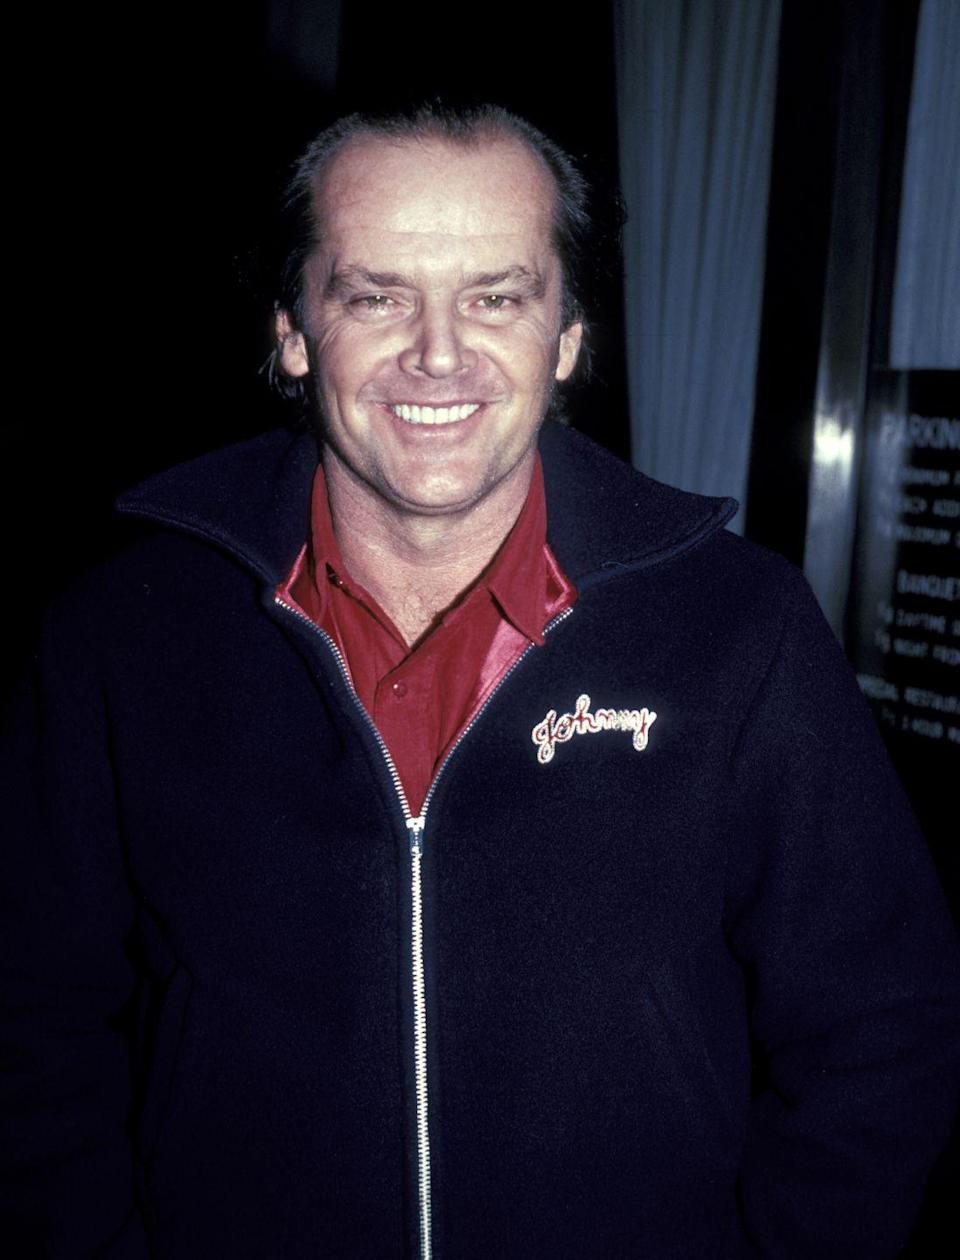 <p>Jack Nicholson earned his breakout role in the counterculture classic <em>Easy Rider </em>in 1969. It wasn't long before he was landing major roles and raking in Oscar nominations. However, it was his spine-chilling performance as Jack Torrance in <em>The Shining </em>that solidified his status in the industry.</p>